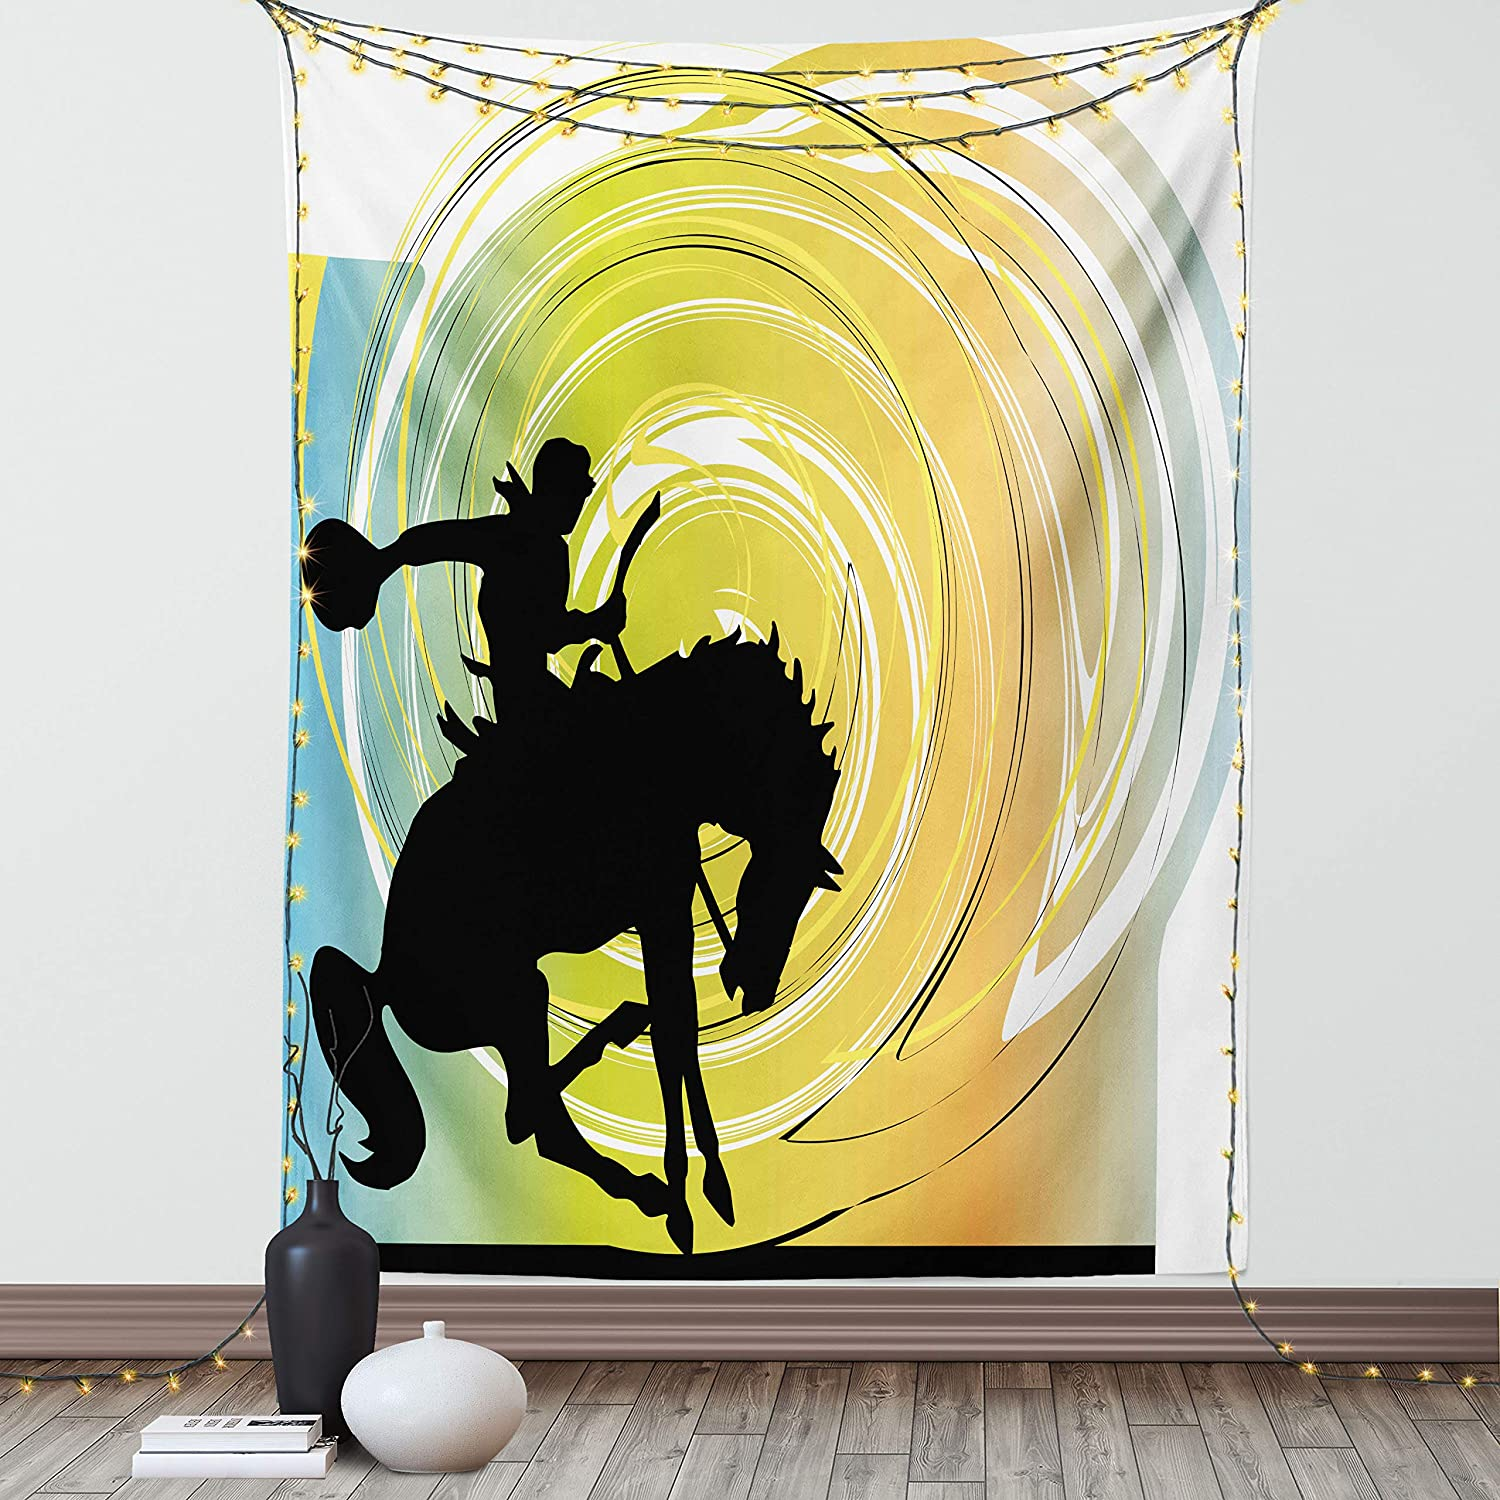 Lunarable Western Tapestry, Galloping Horse Cowboy Silhouette Colorful Abstract Circular Backdrop, Fabric Wall Hanging Decor for Bedroom Living Room Dorm, 23